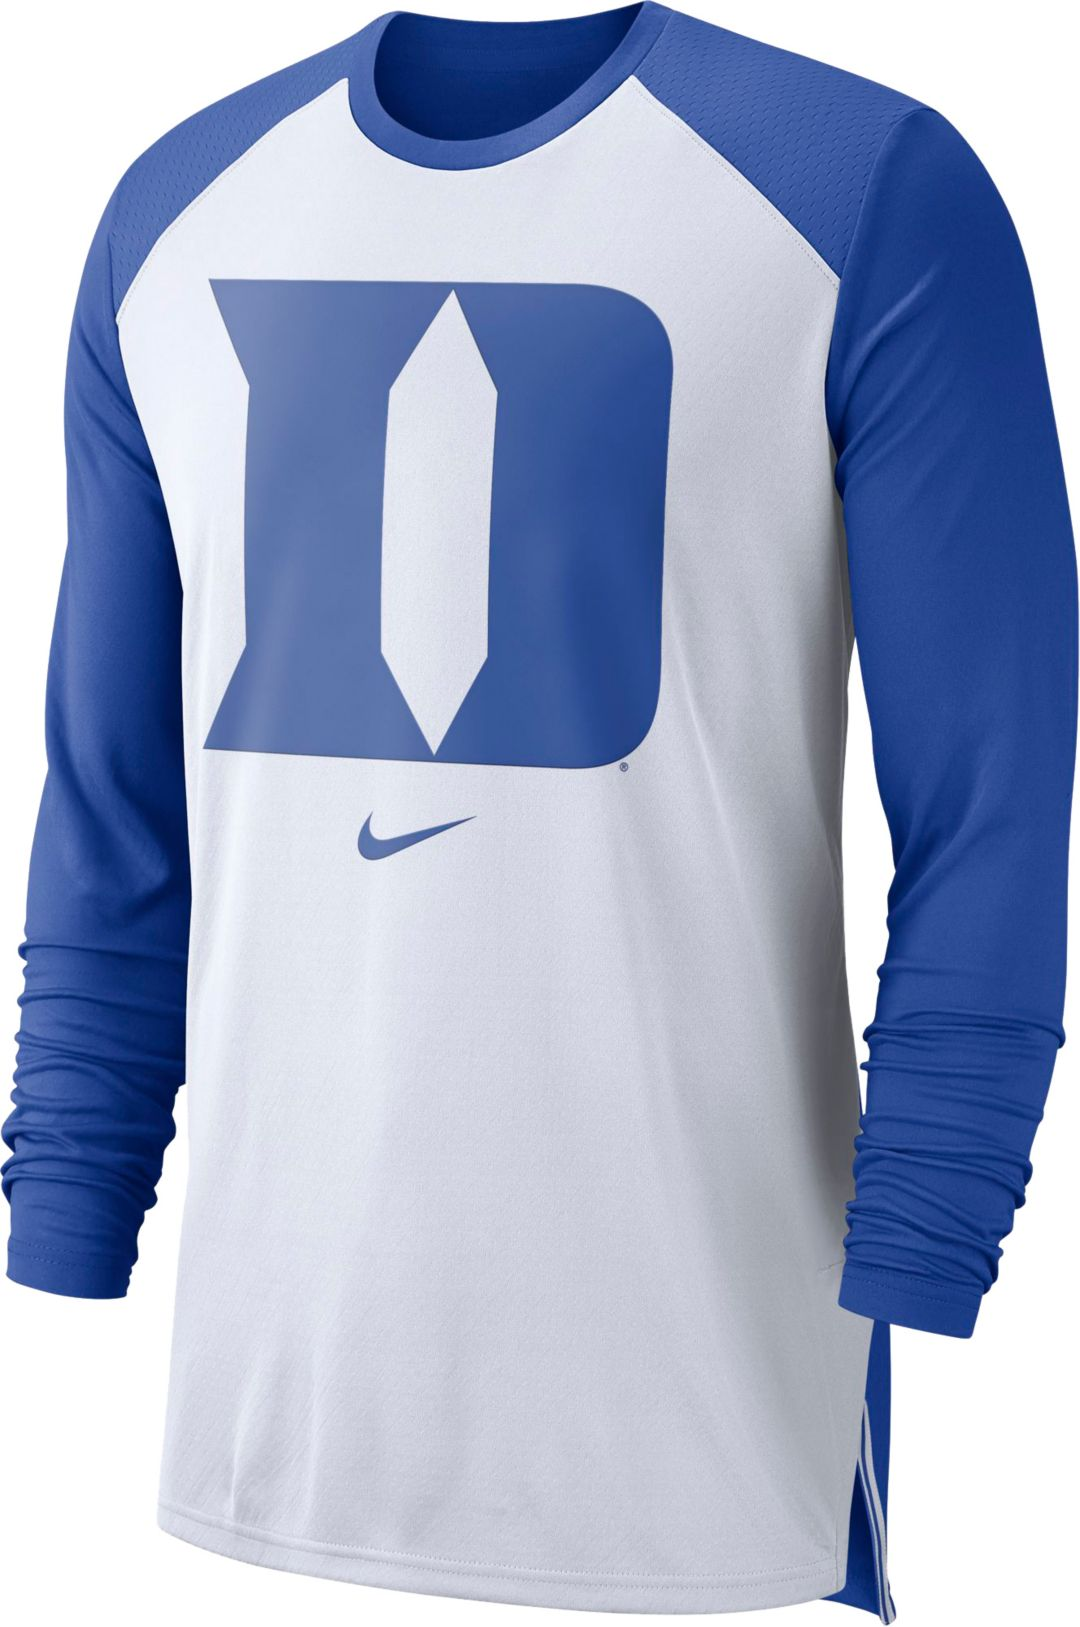 ca7892c87 Nike Men's Duke Blue Devils White/Duke Blue Long Sleeve Shooting Shirt 1